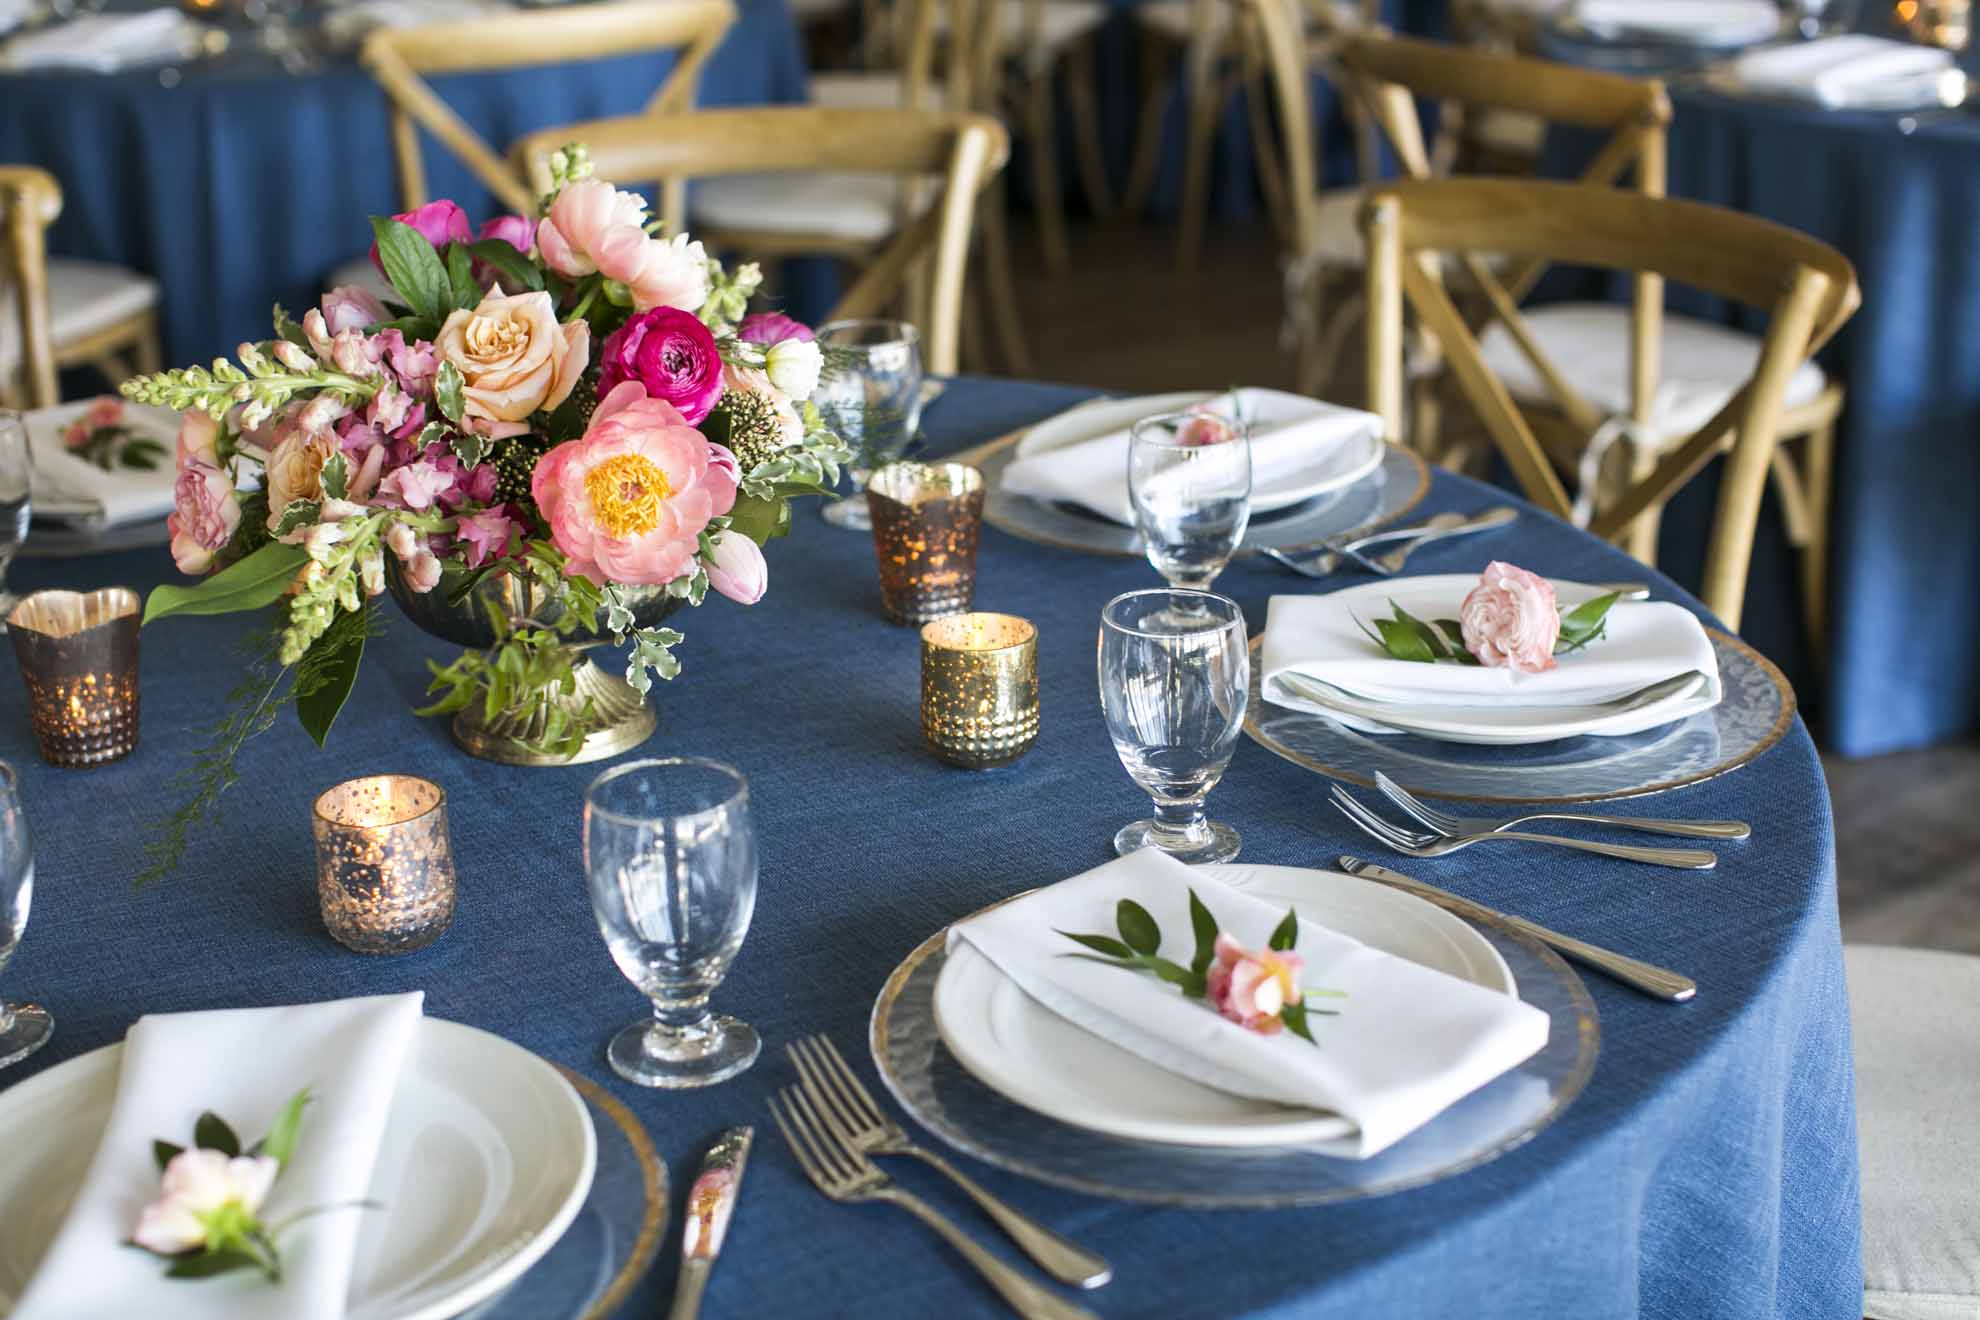 Hot pink and blue wedding reception featuring pink compote centerpiece on blue linen - v